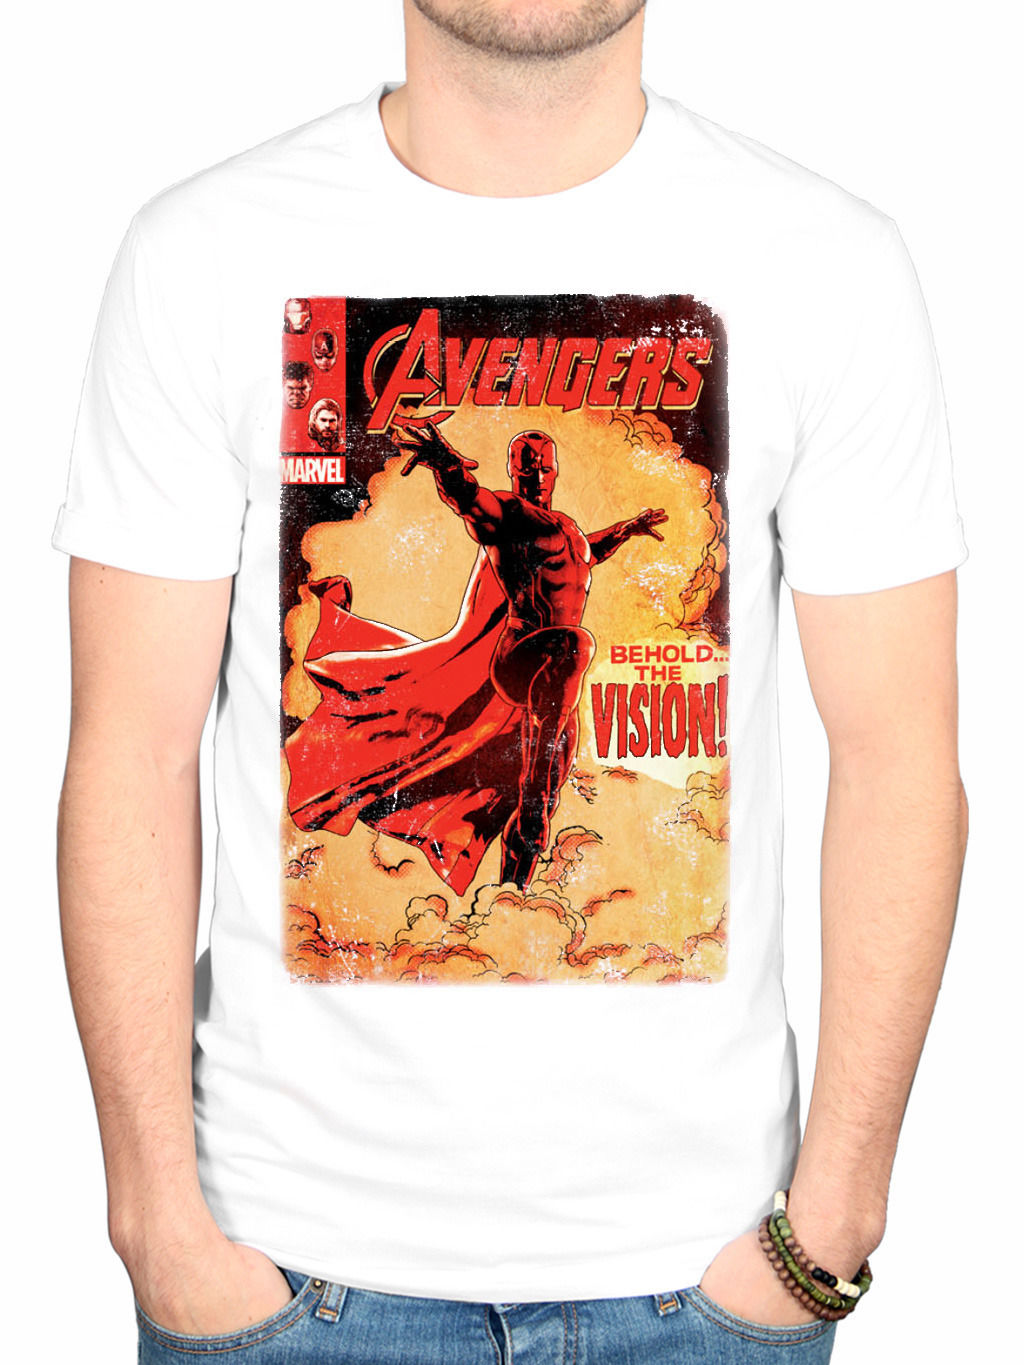 Official AVENGERS AGE OF ULTRON VISIONE COPERTURA T-SHIRT NUOVO Merchandise